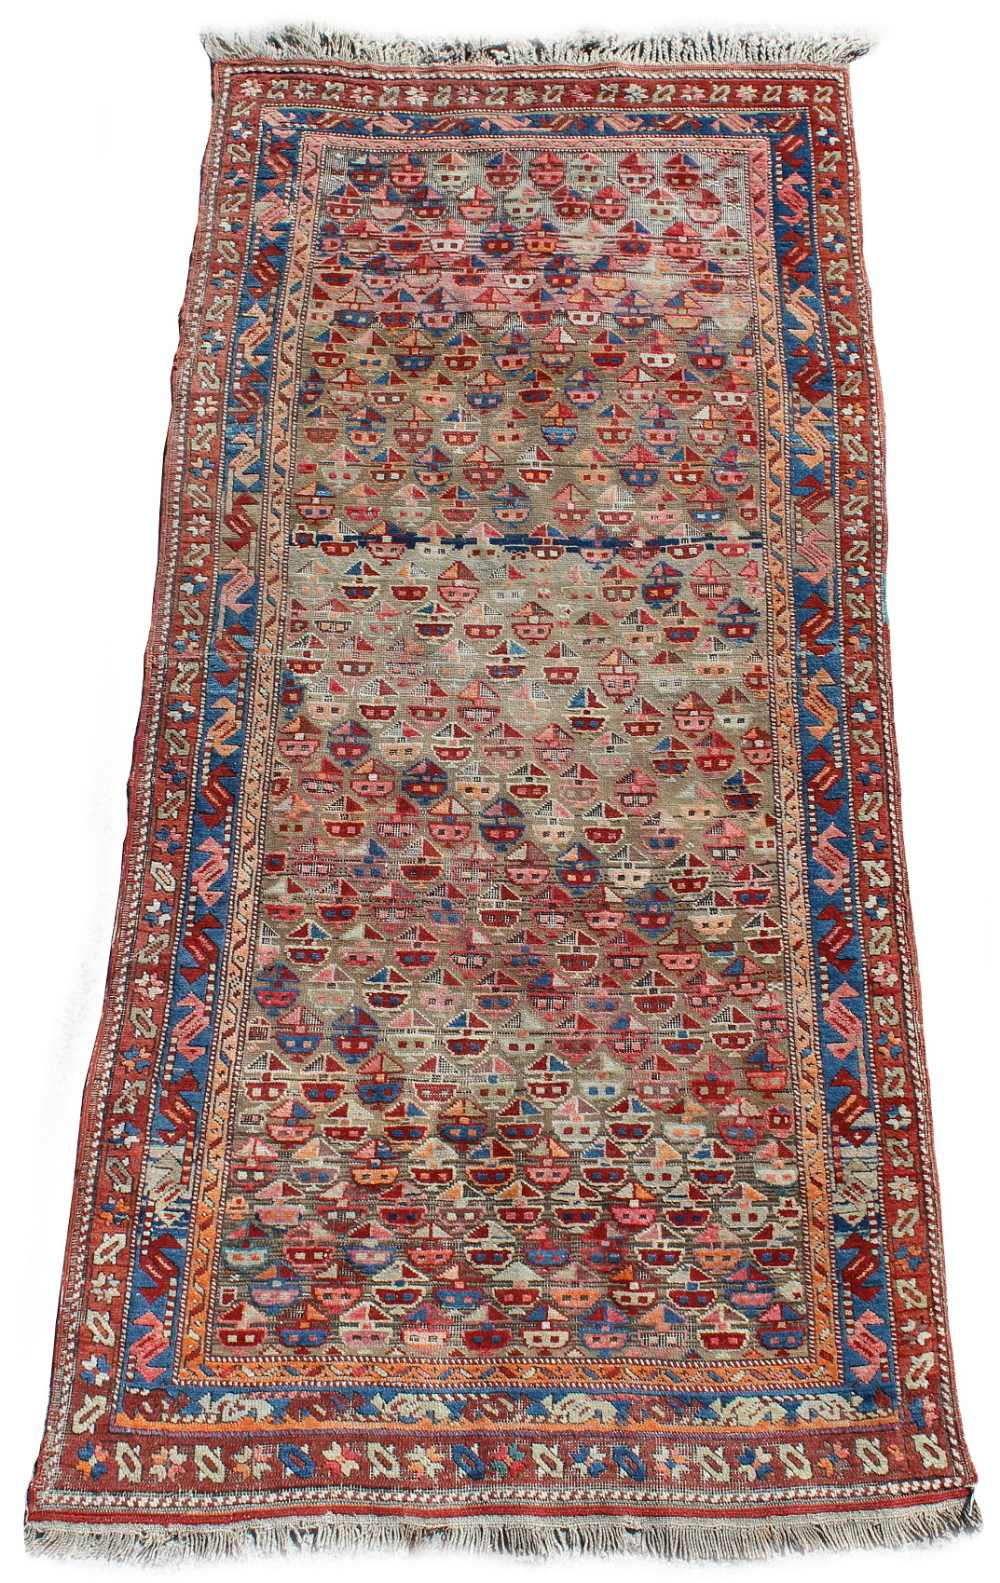 Lot 56 - Property of a deceased estate - an early 20th century Caucasian long rug, with all-over field, 88 by